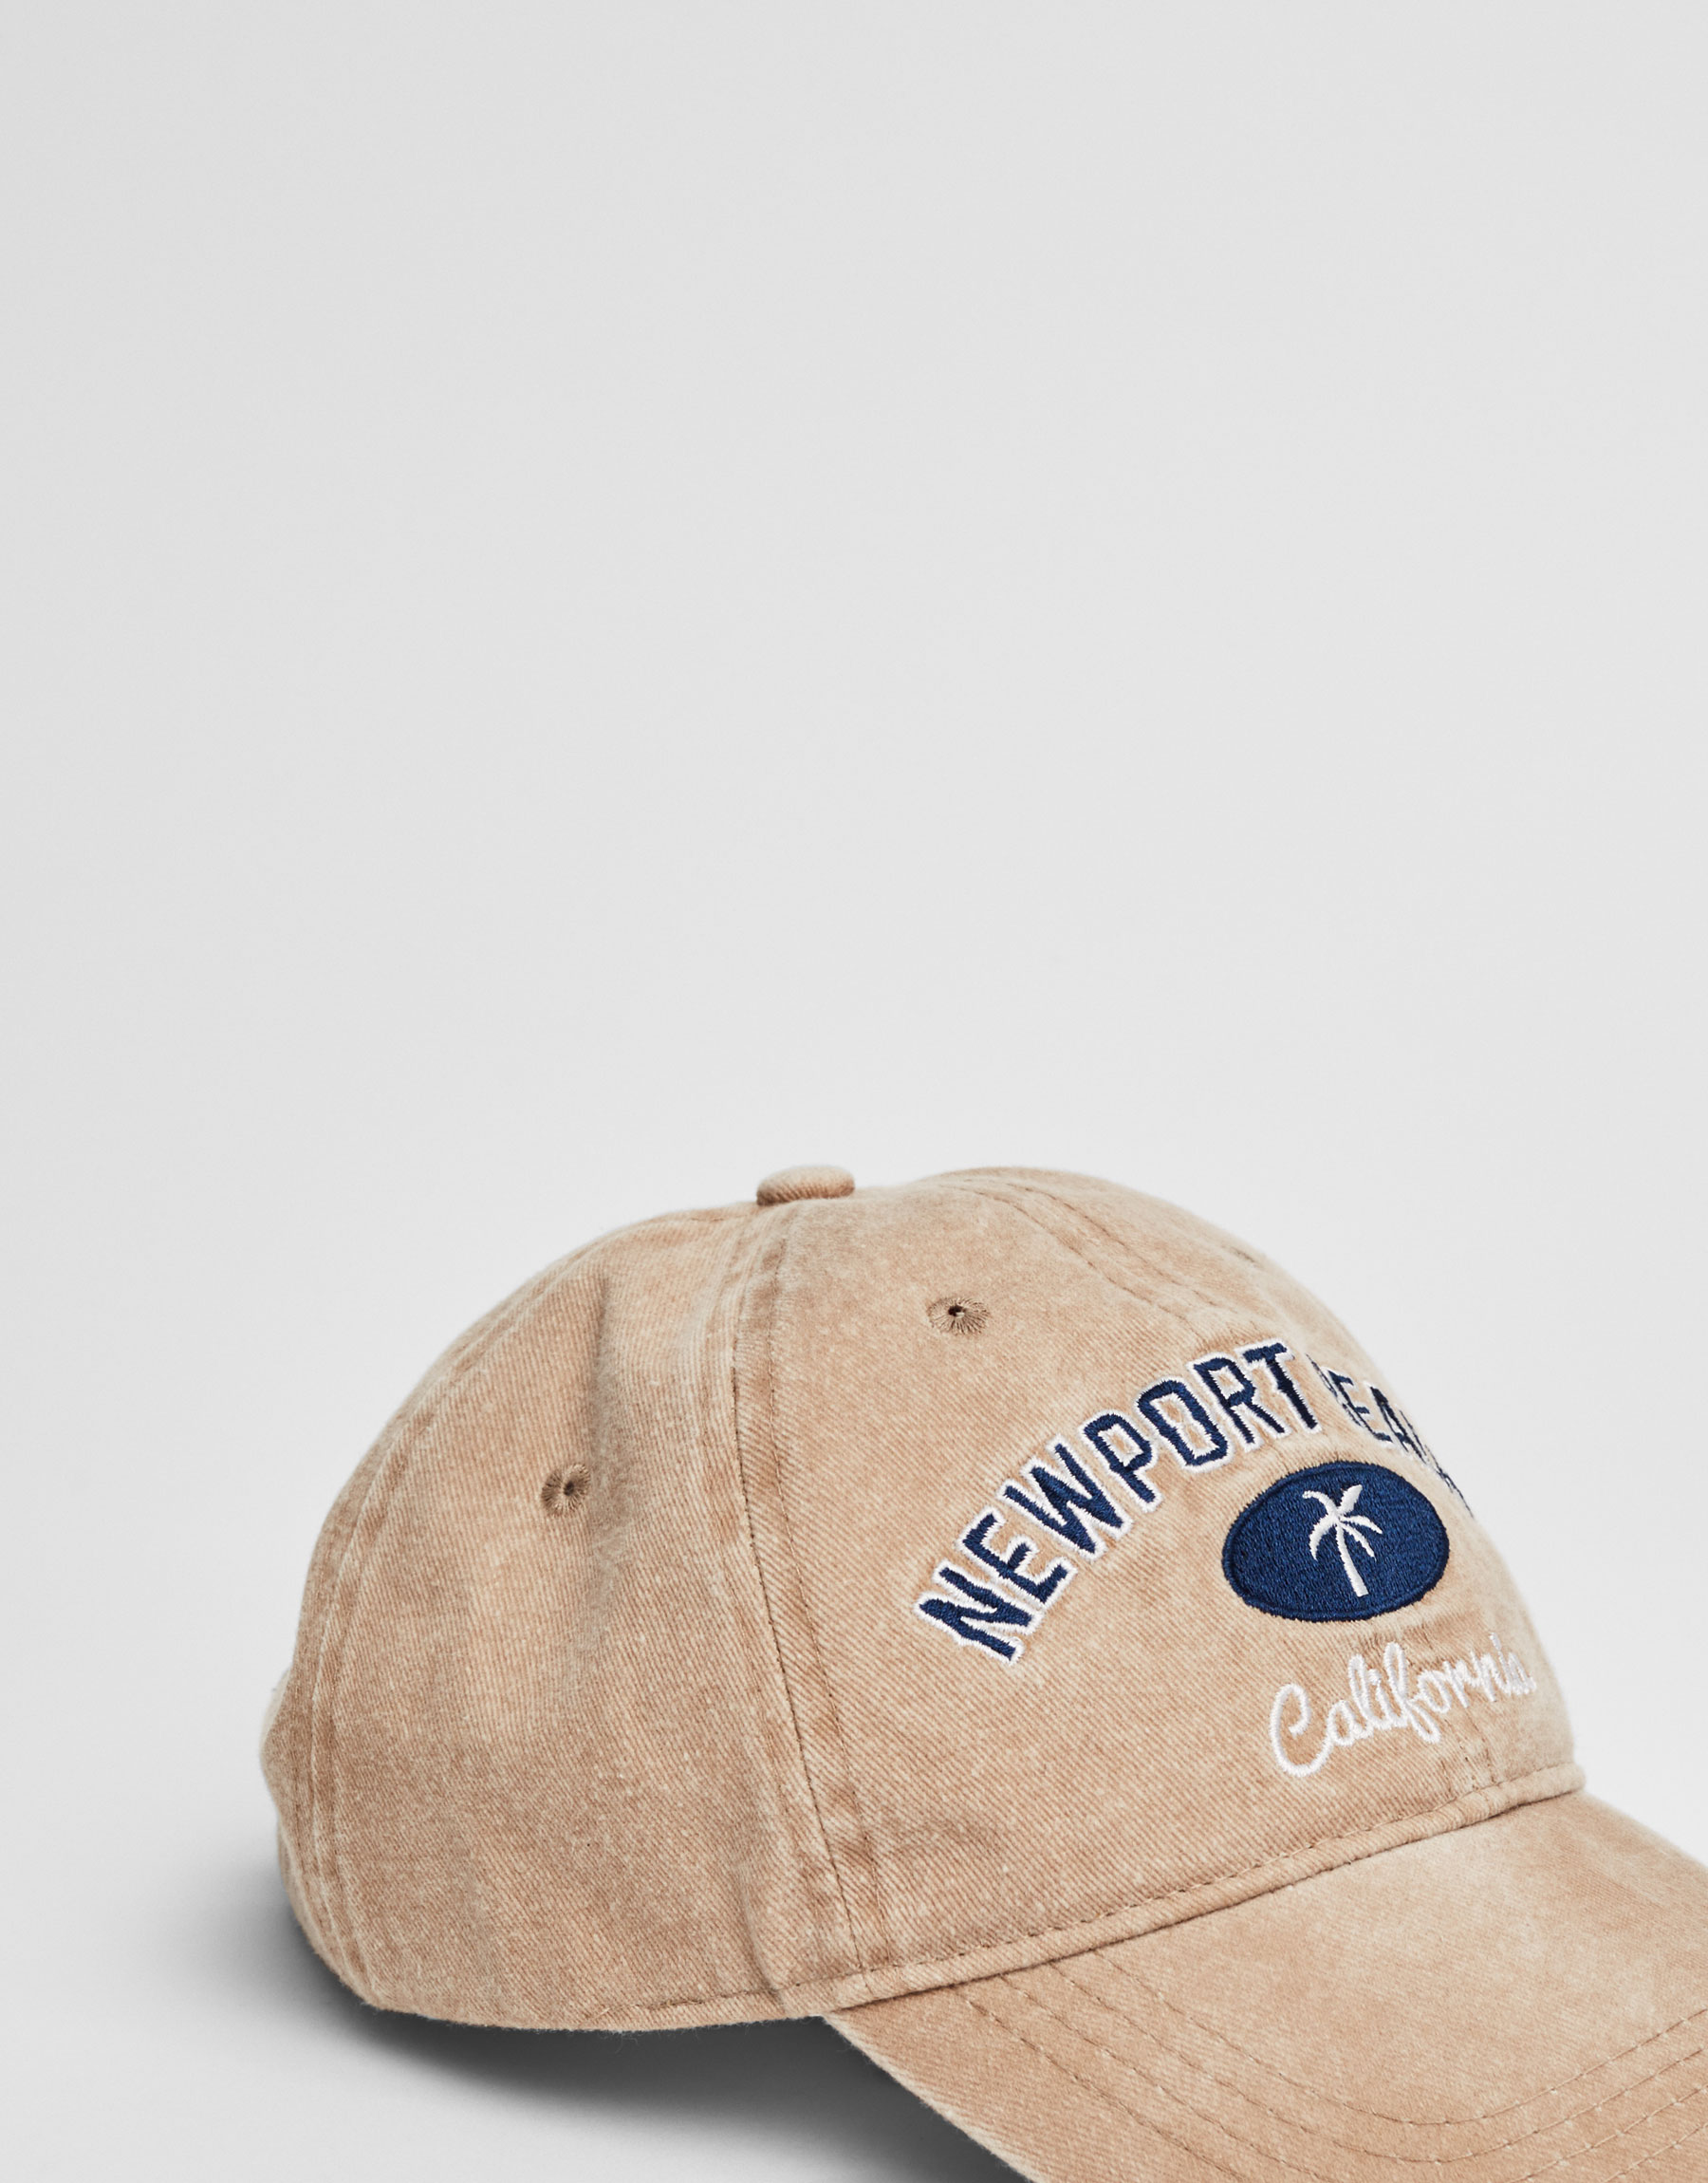 California embroidered cap